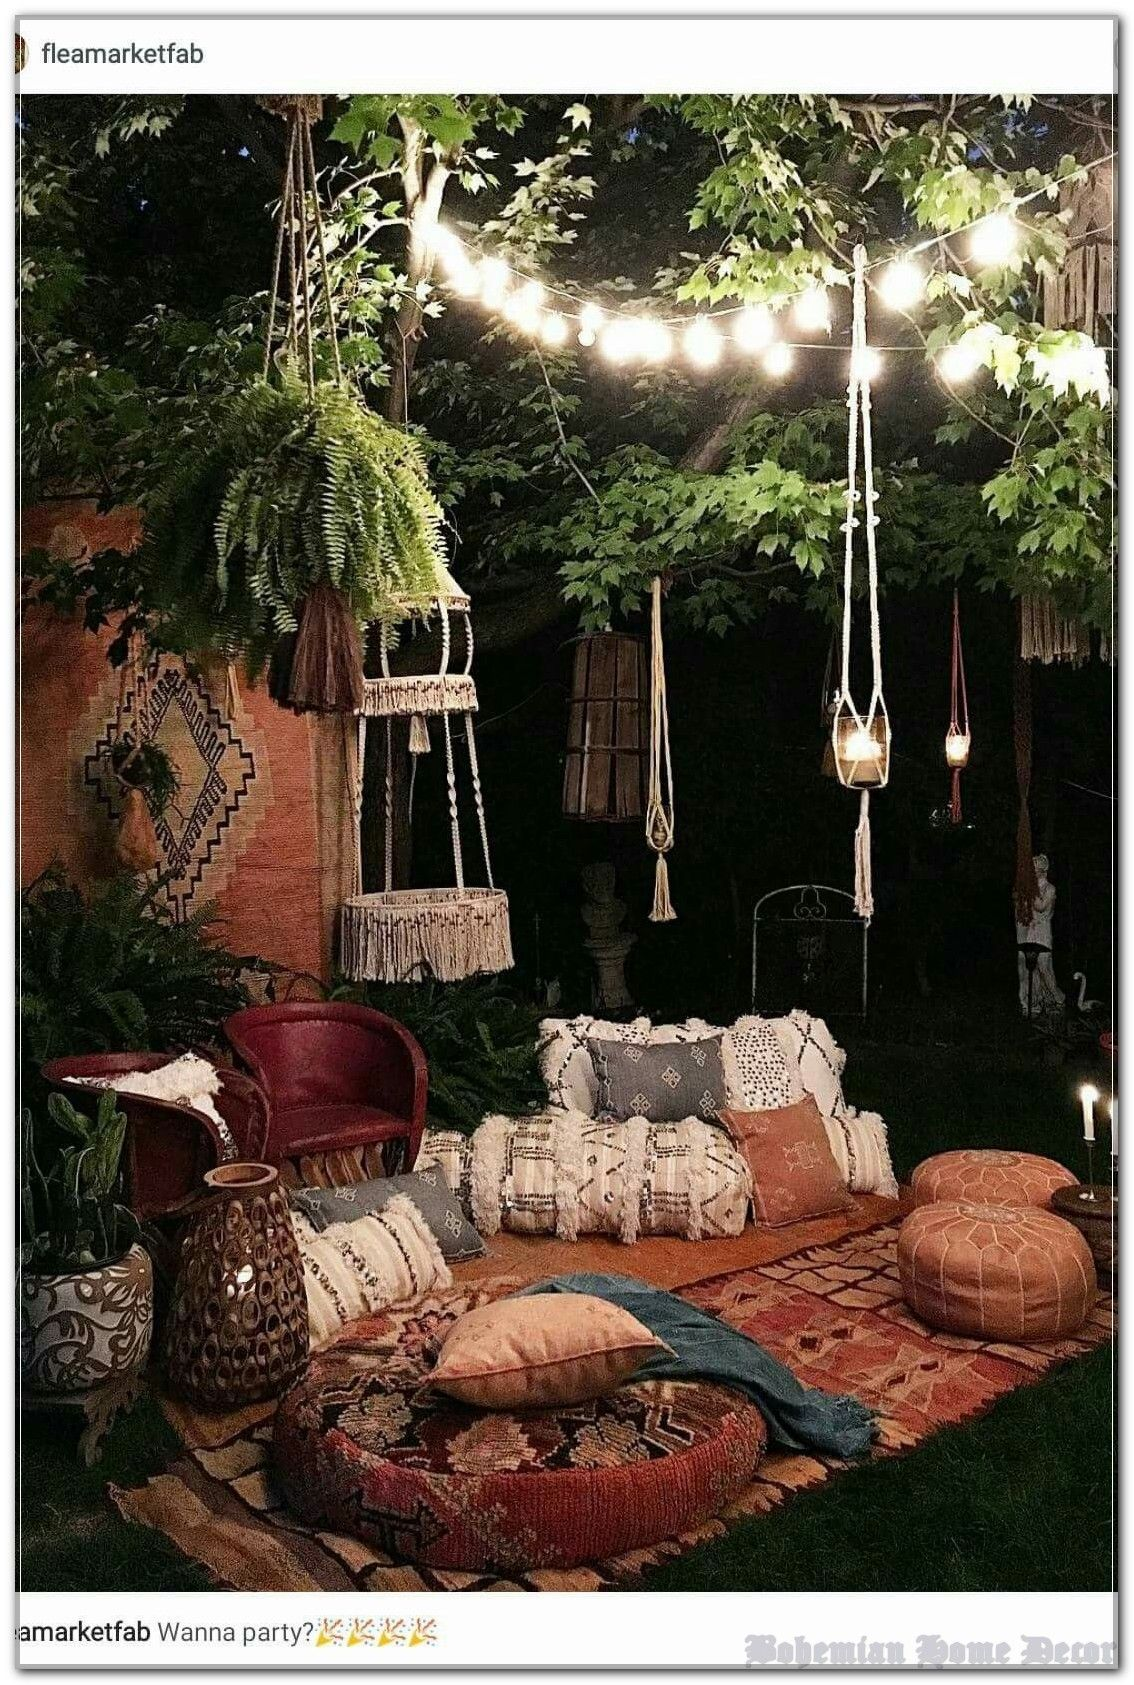 Does Bohemian Home Decor Sometimes Make You Feel Stupid?